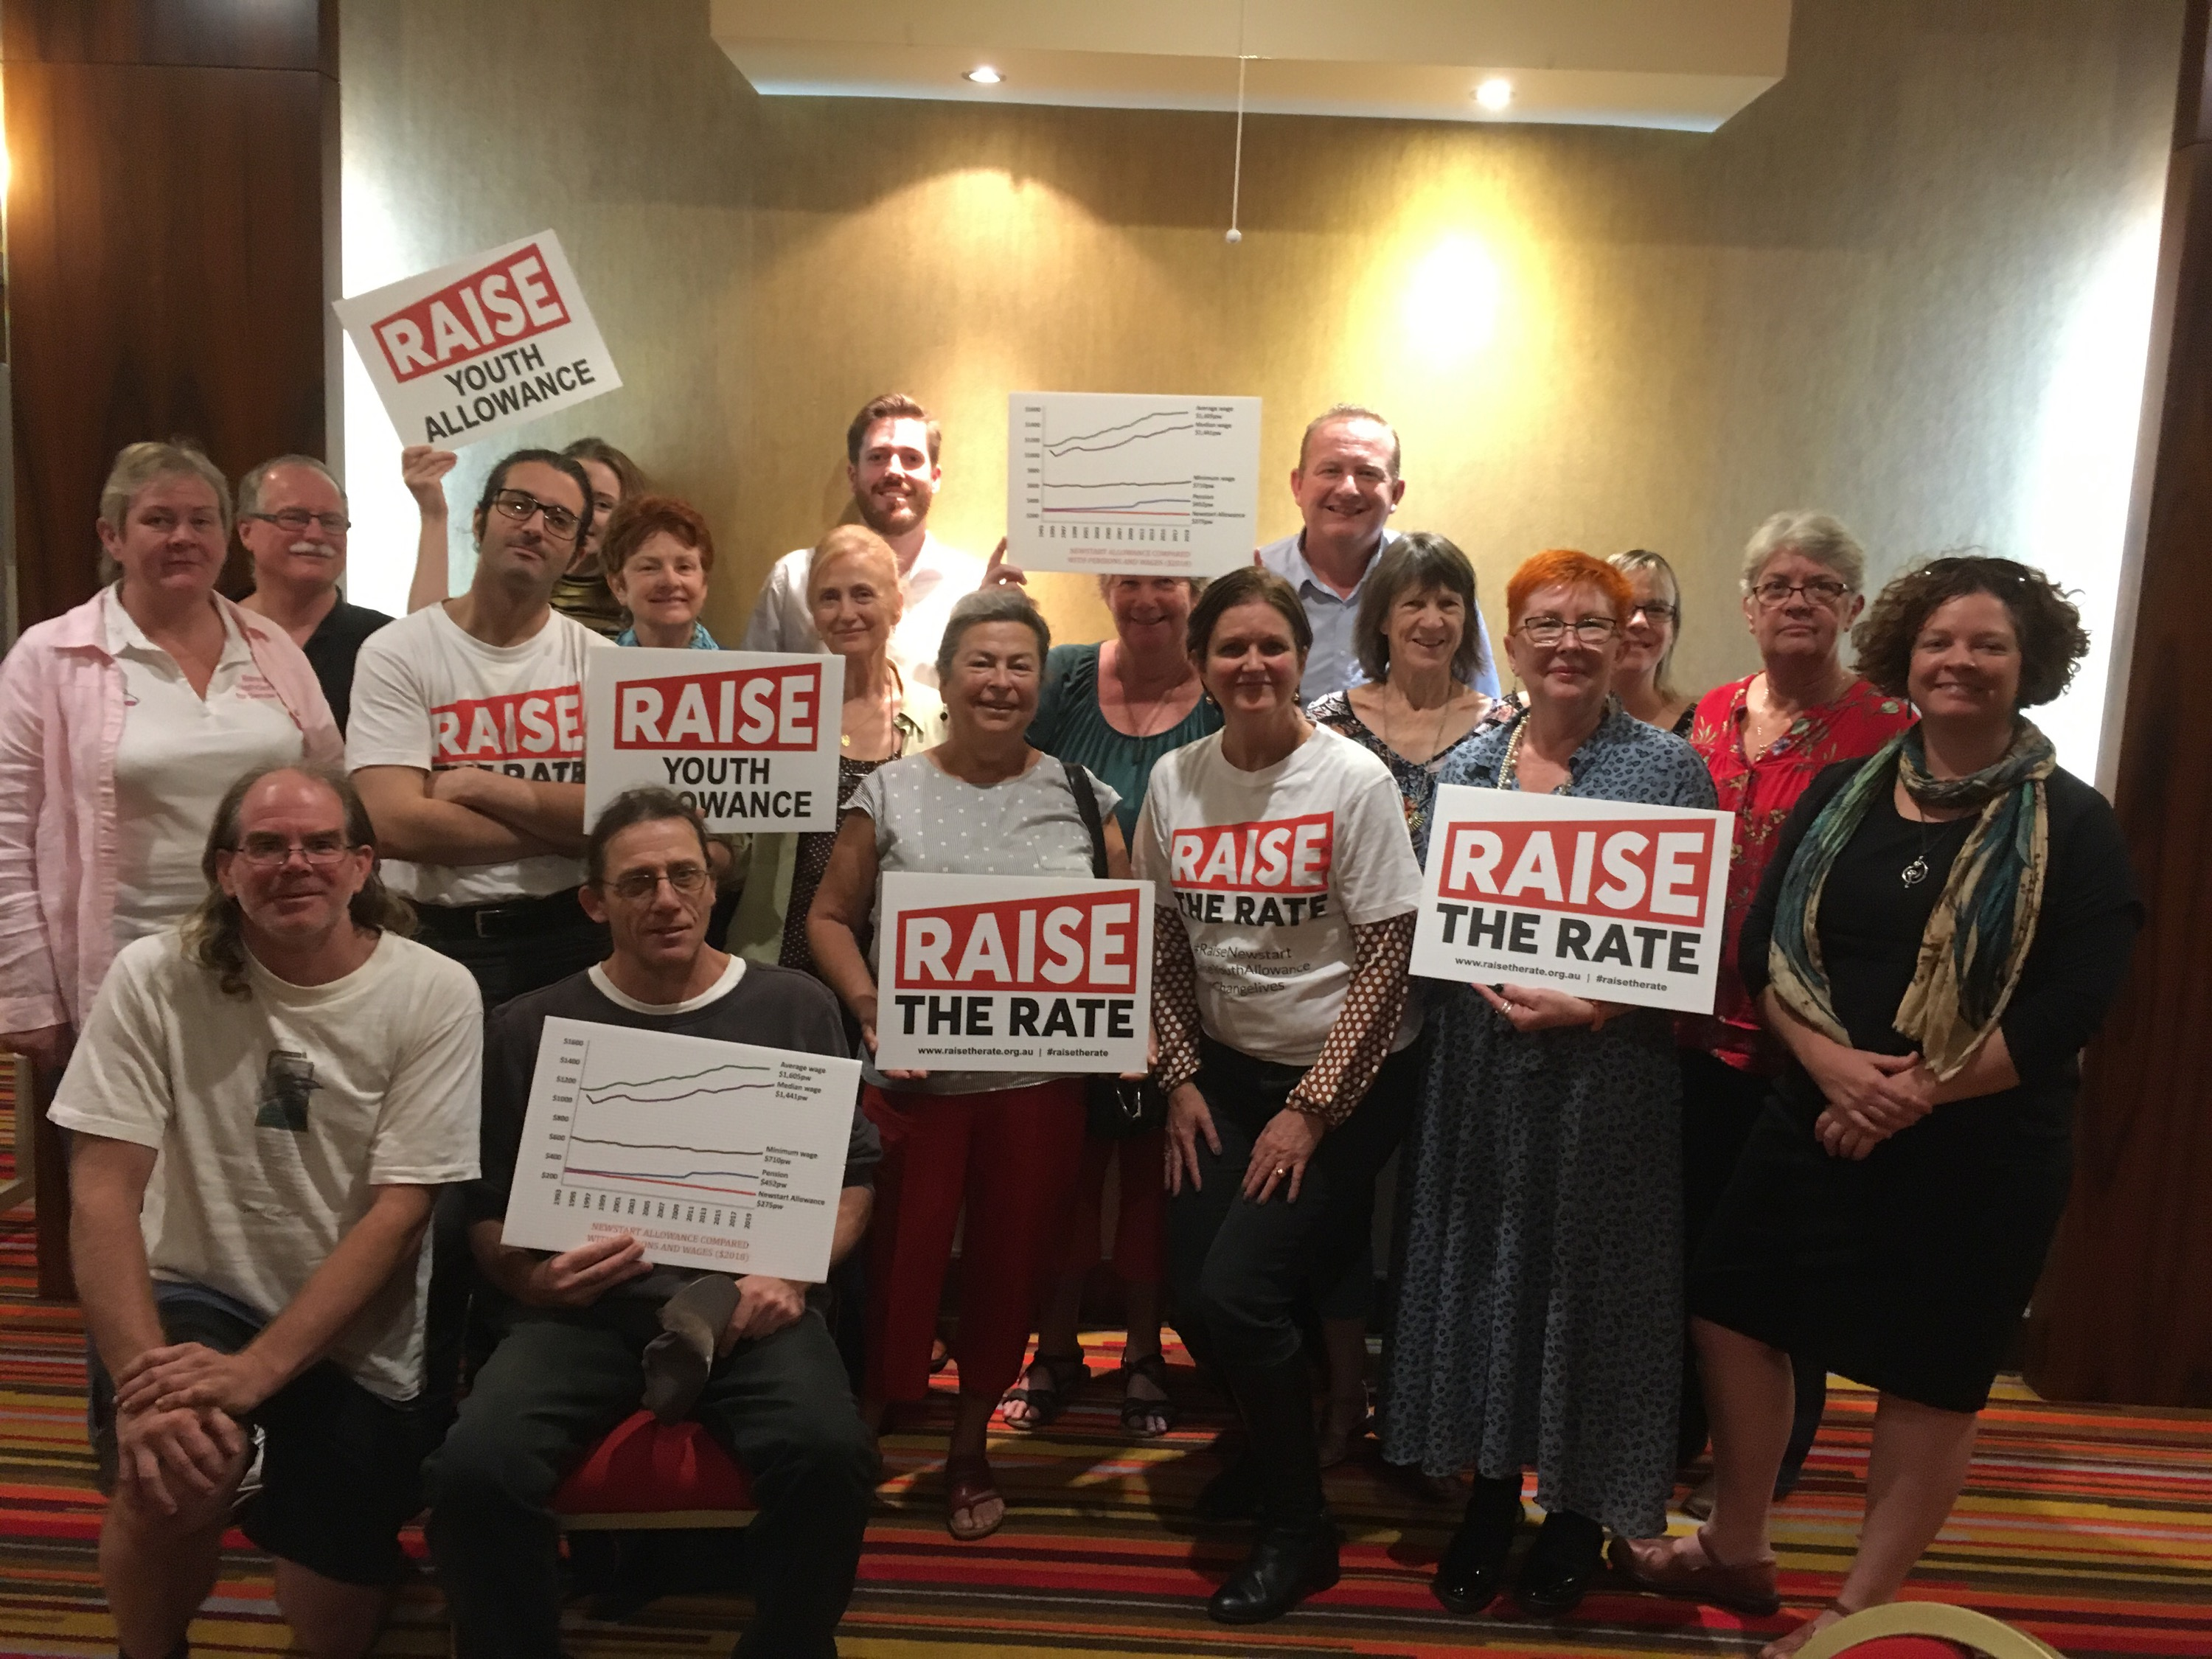 Raise the Rate campaigners